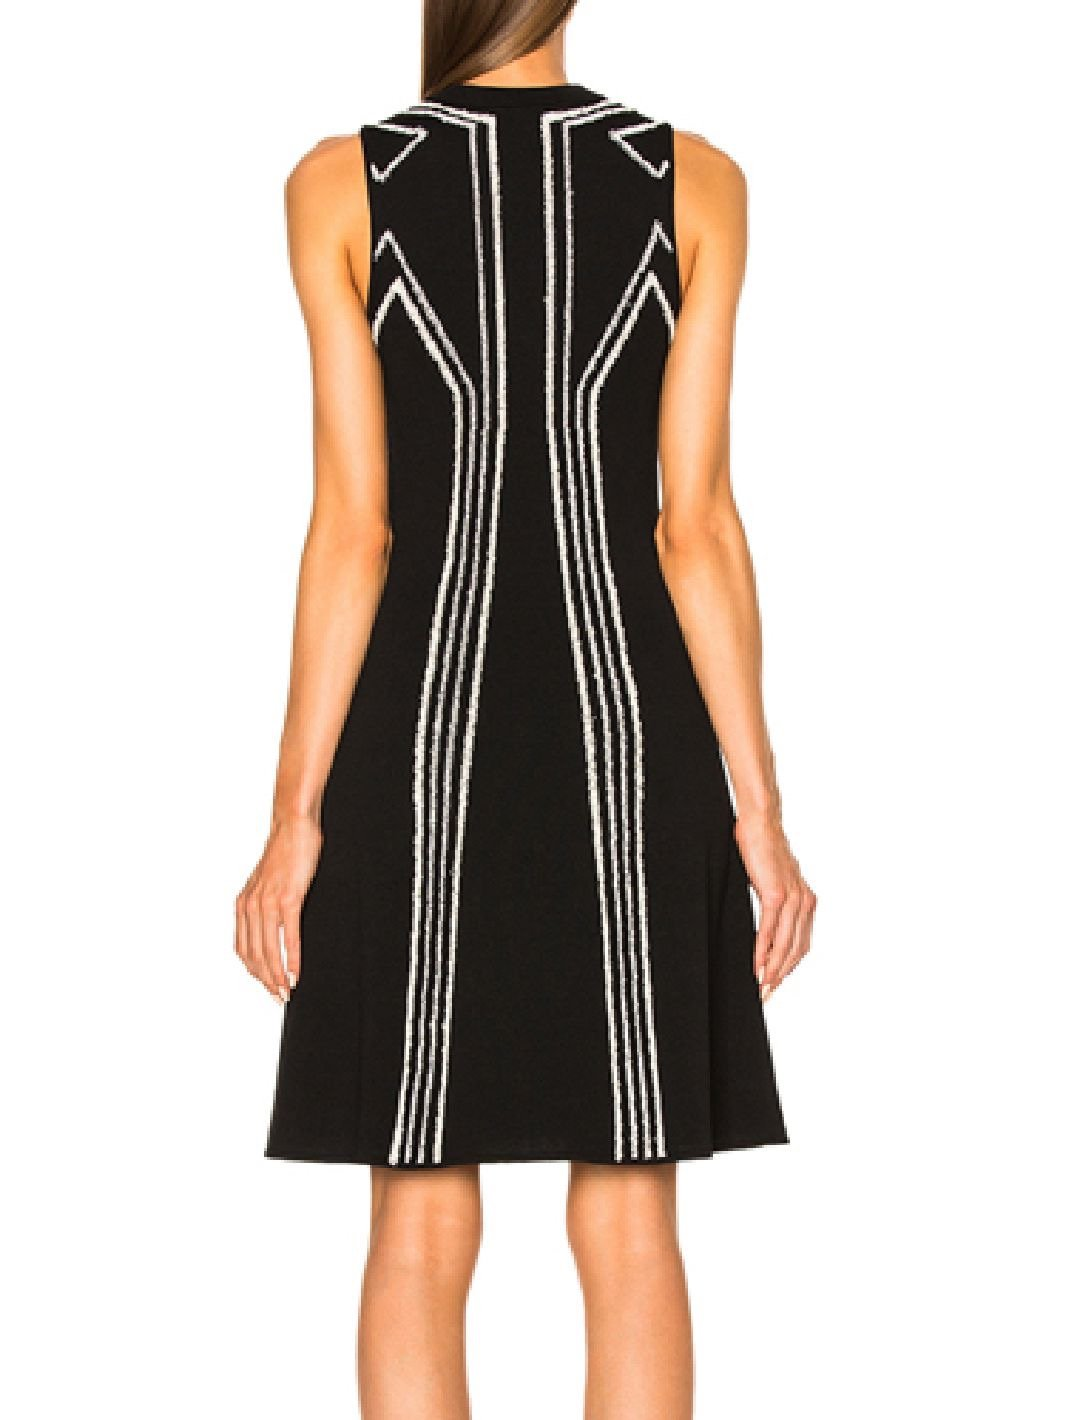 Intarsia Circle Cut Out Dress - The Bobby Boga